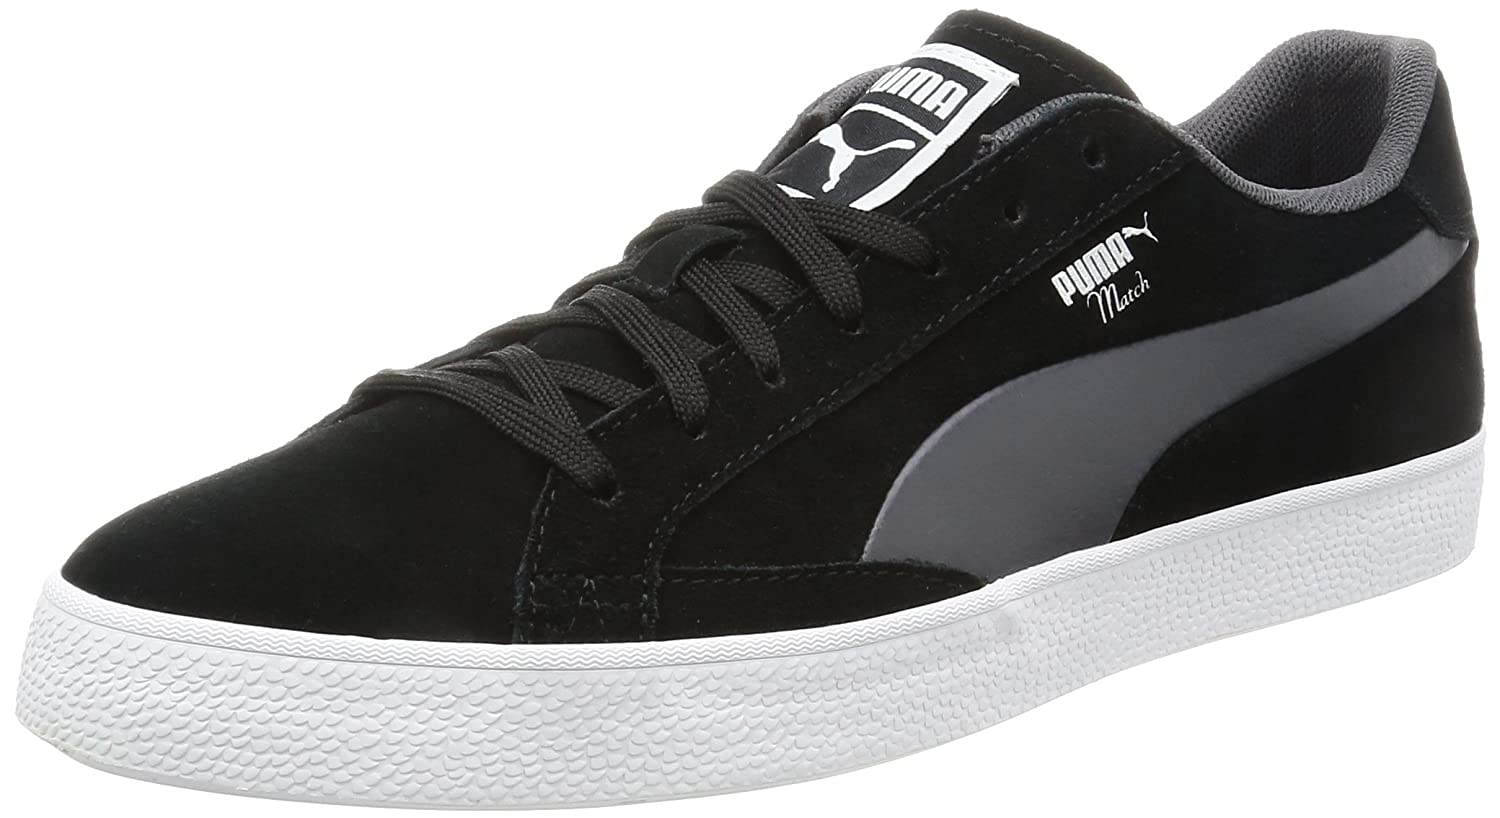 83fc644e1f750b Puma Unisex Adults  Match Vulc 2 Low-Top Sneakers  Amazon.co.uk  Shoes    Bags